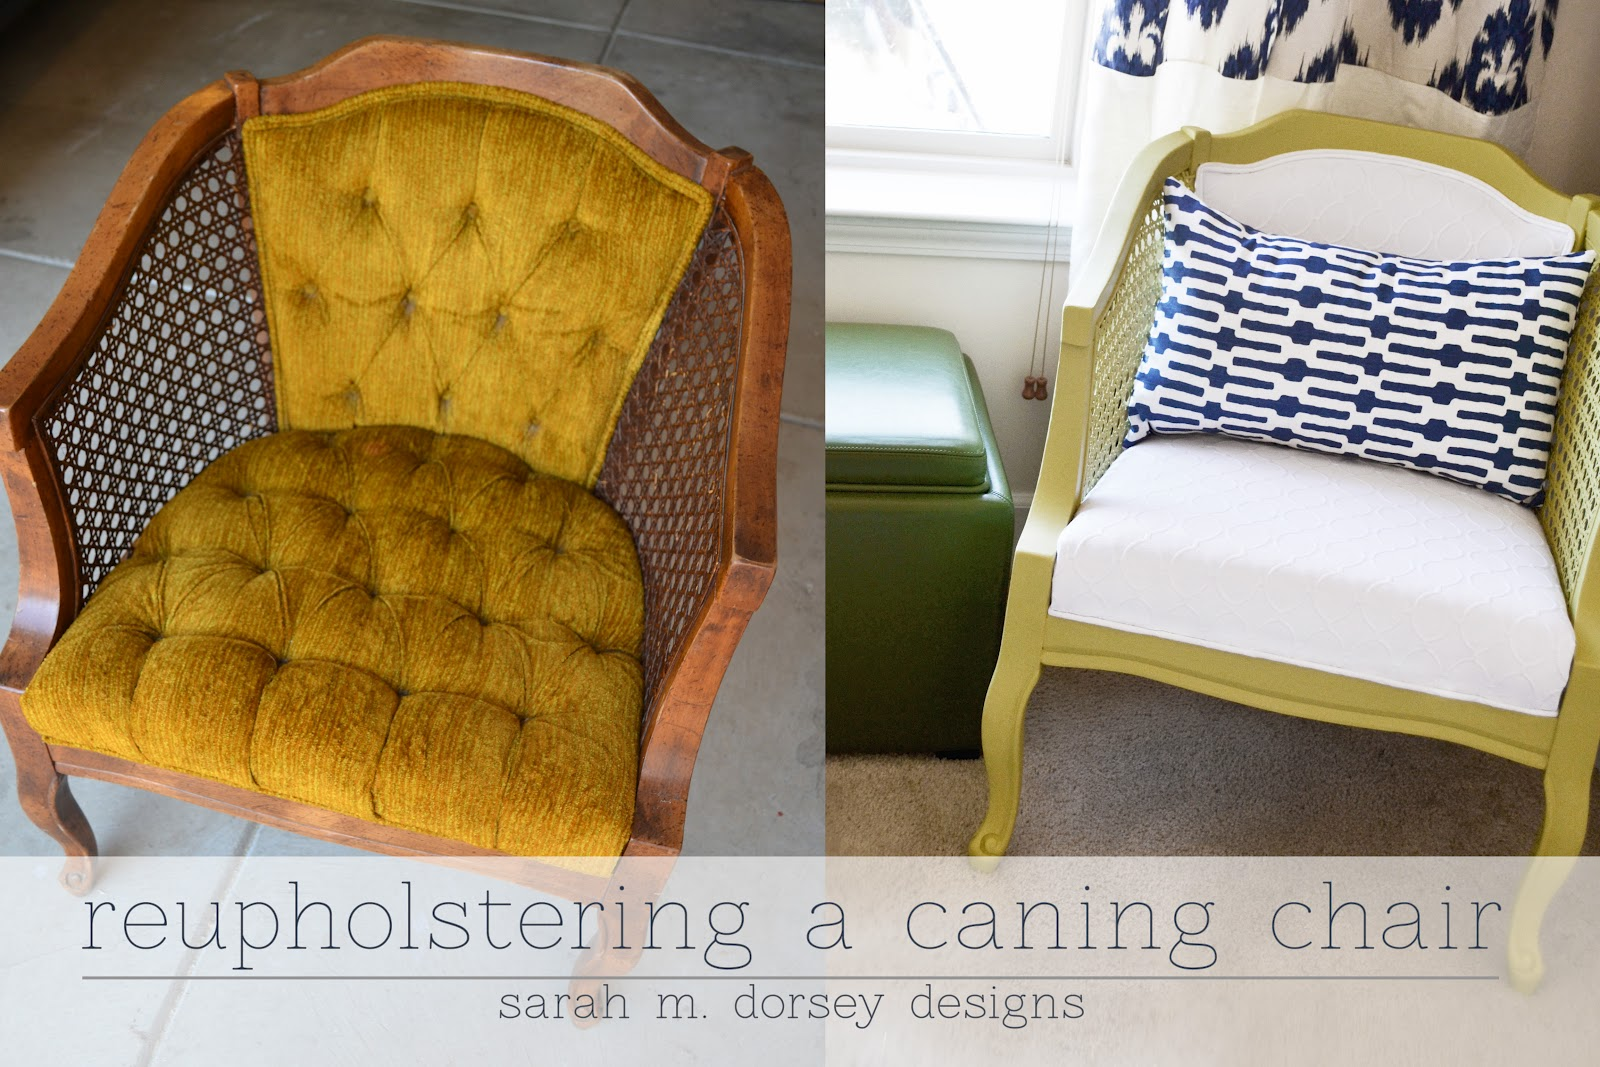 how to cane a chair chairs for baby room sarah m dorsey designs chartreuse and white caning